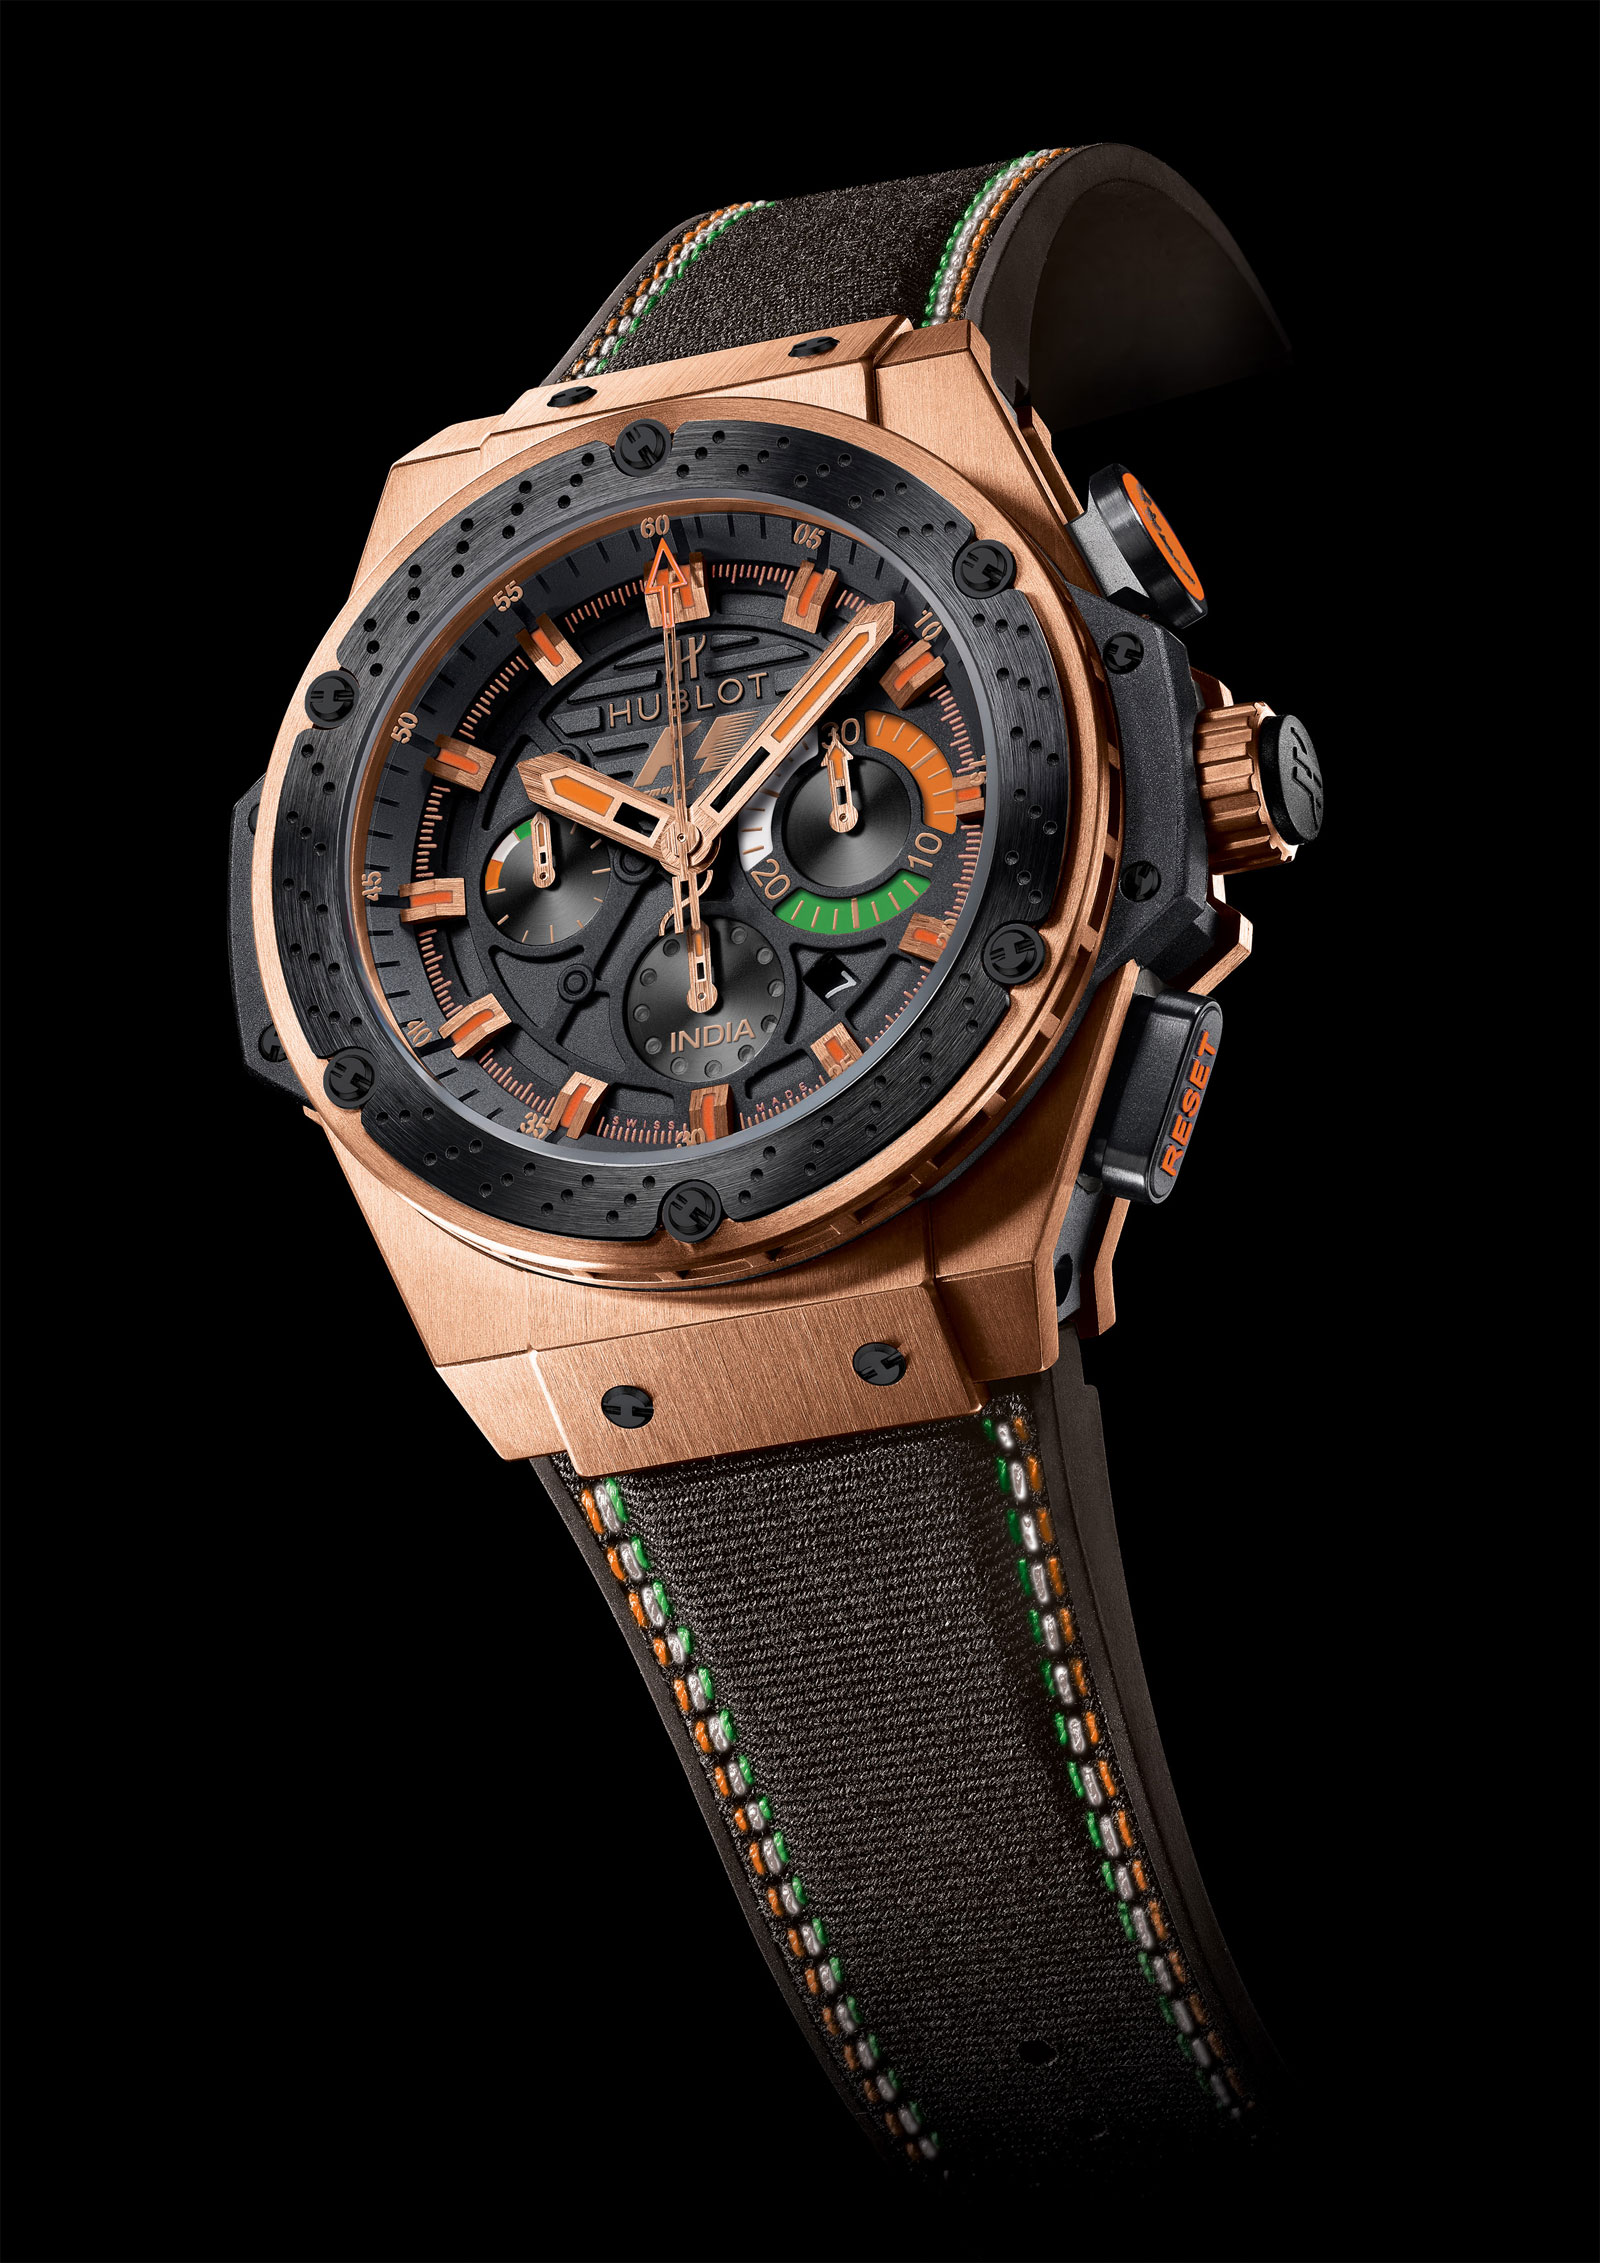 Limited Edition Hublot F1 King Power India Watch